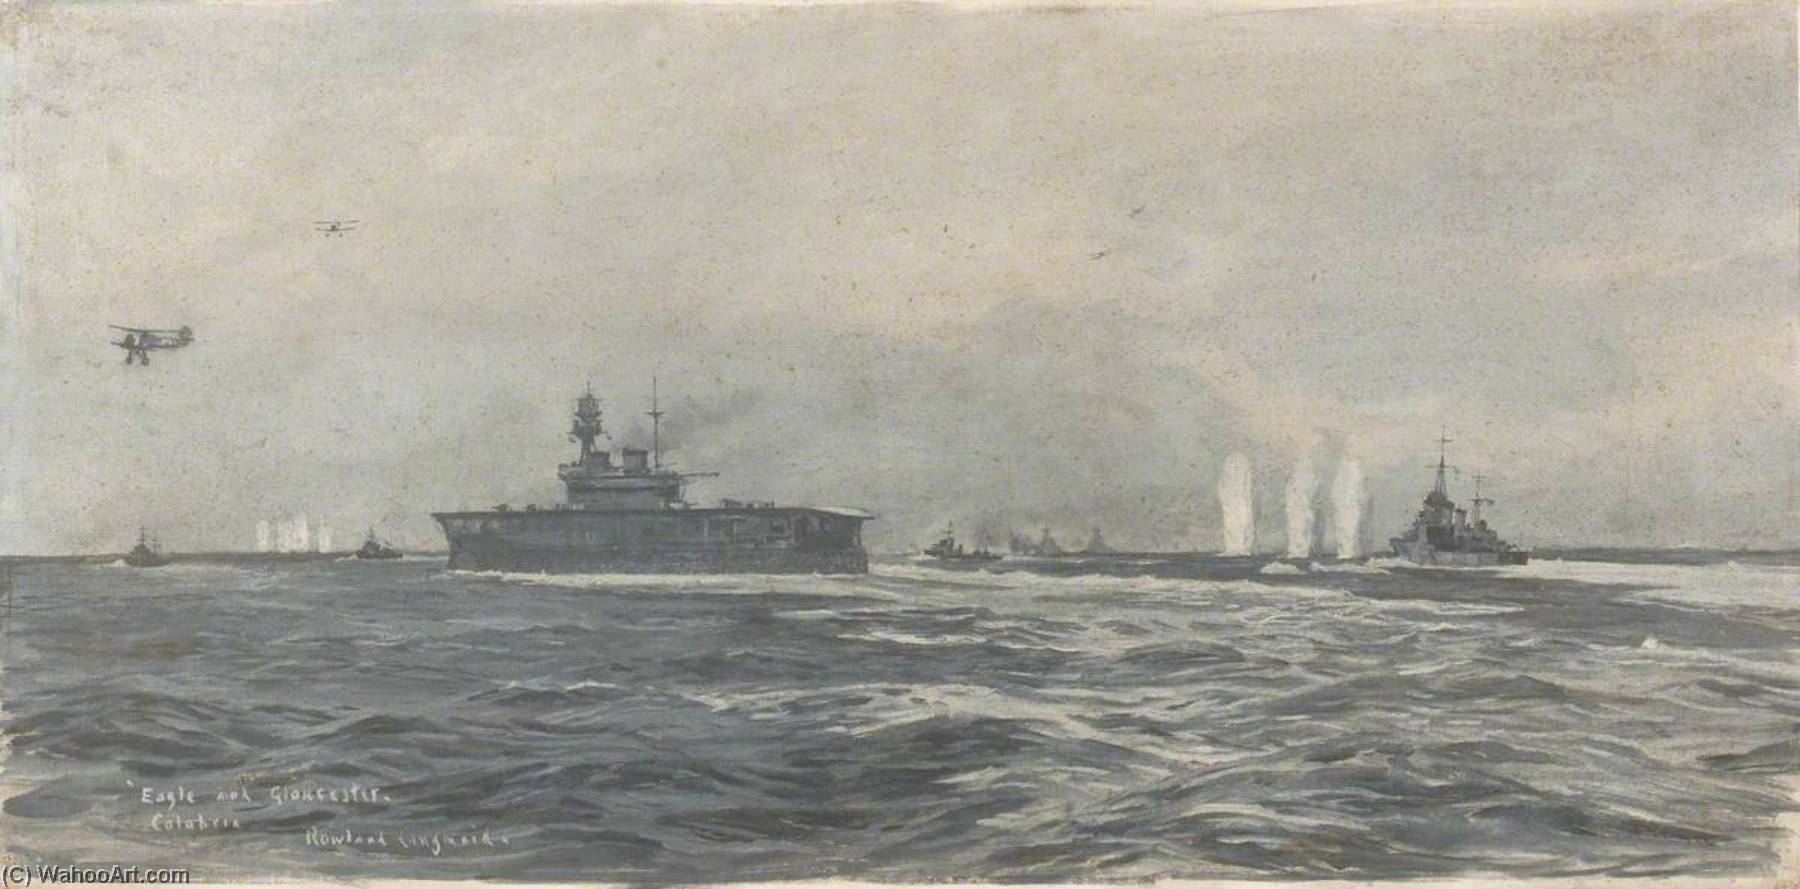 HMS 'Eagle' and 'Gloucester' off Calabria, 9 July 1940, Oil On Canvas by Rowland Langmaid